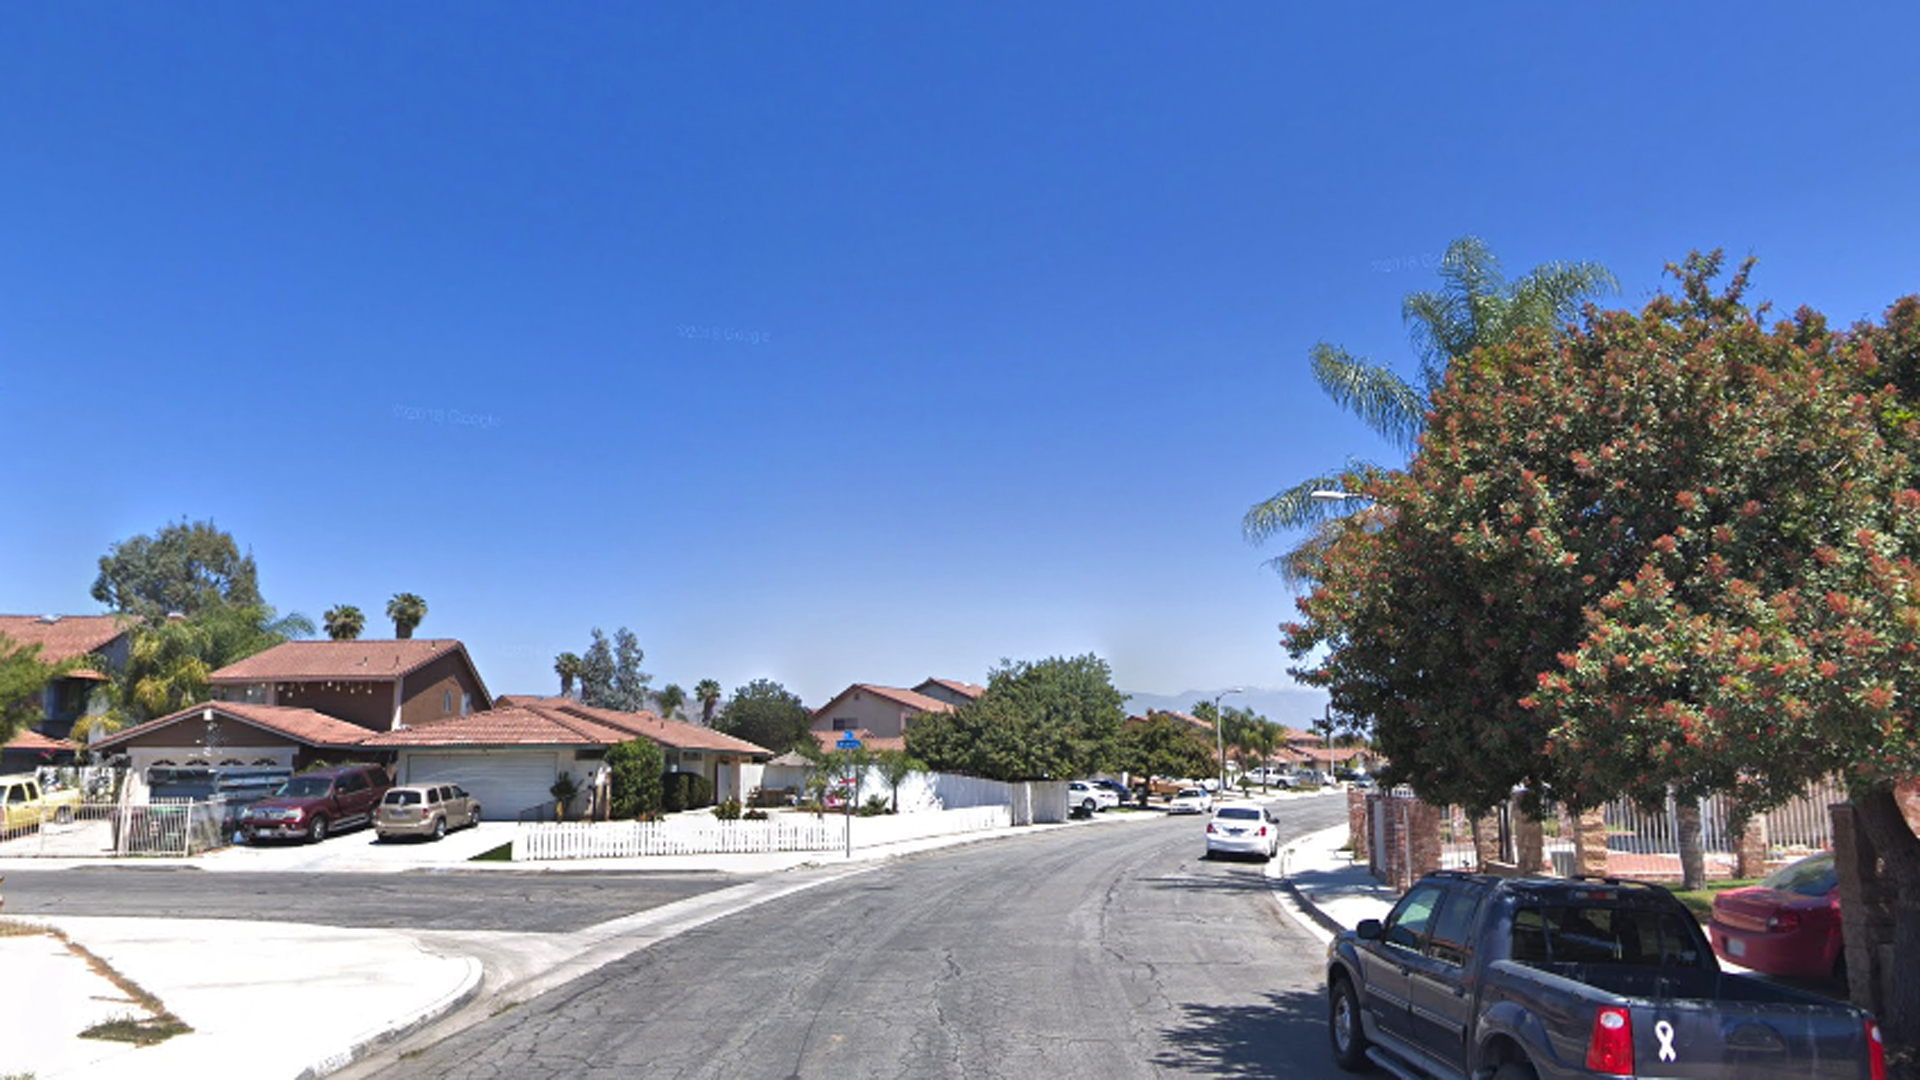 The intersection of Yee Street and Chiante Court in Moreno Valley is seen in a Google Maps Street View image.